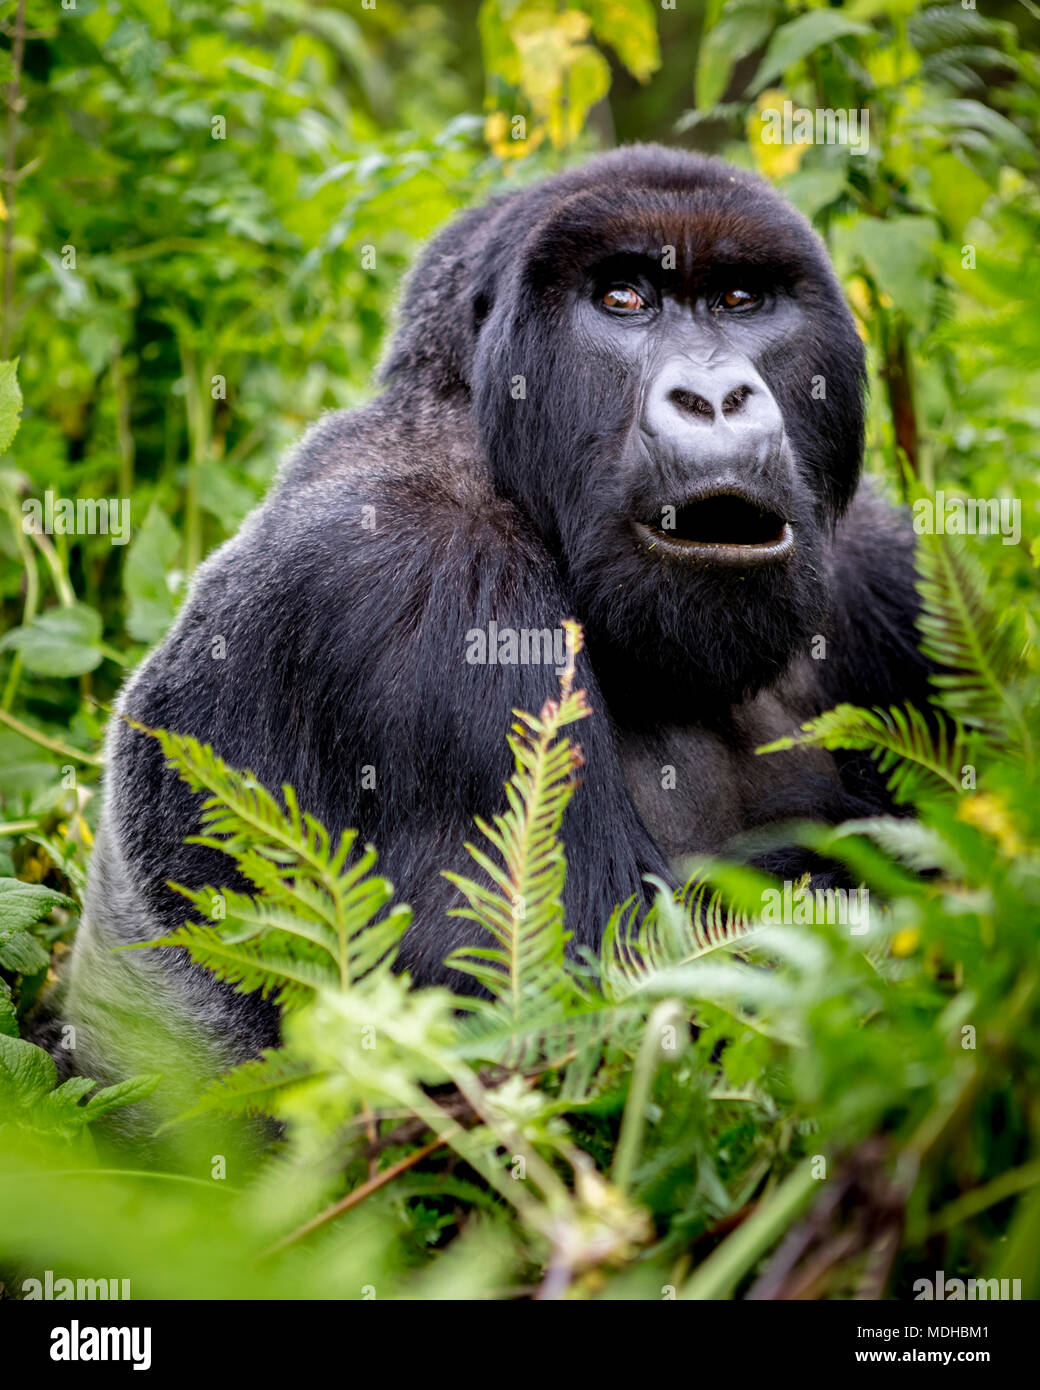 A Gorilla from the Giranzea Gorilla family sitting in the lush foliage with it's mouth open; Northern Province, Rwanda - Stock Image